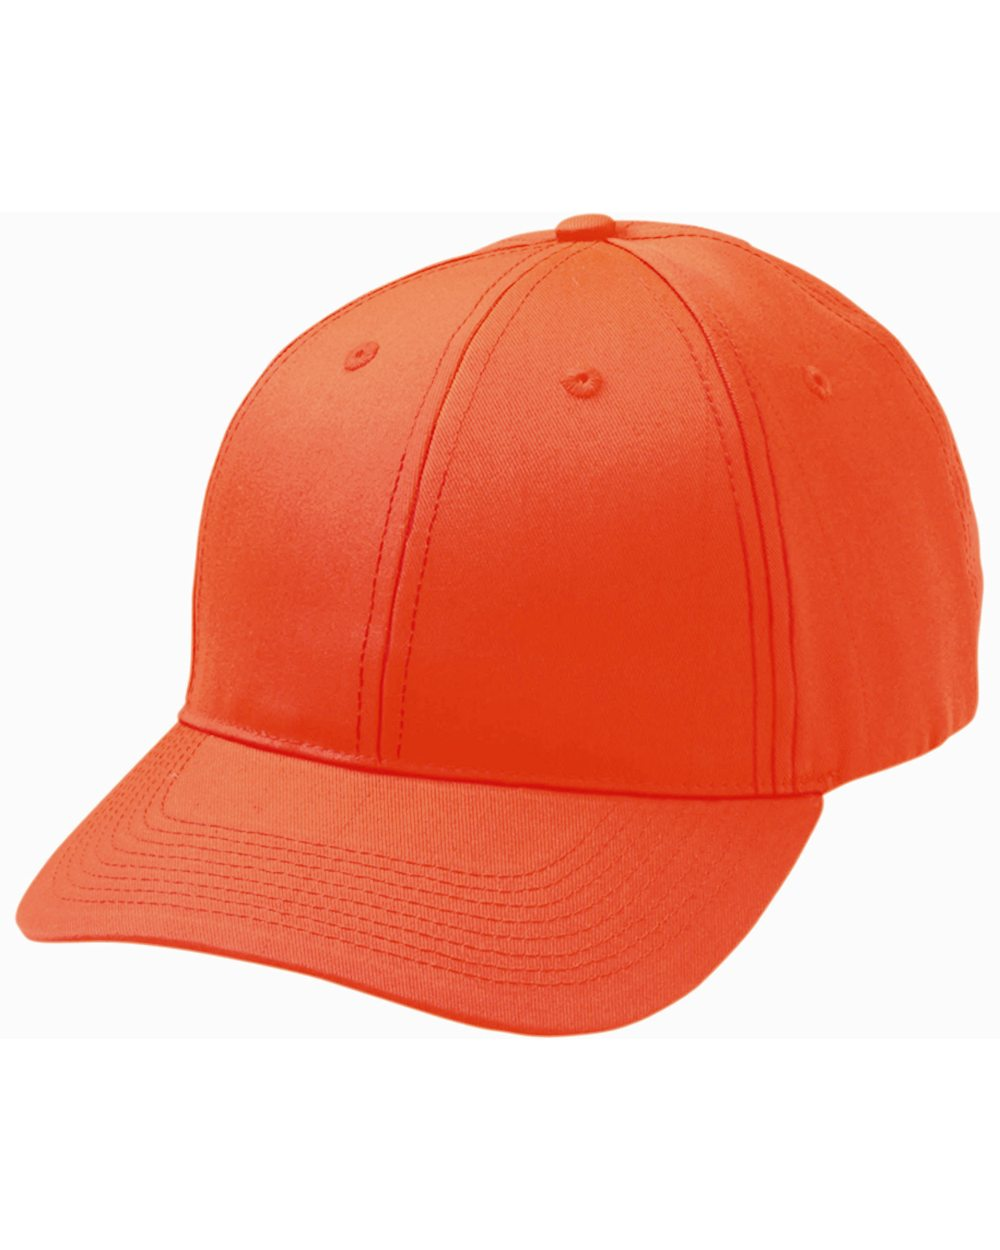 KATI SN100 Blaze Orange Cap